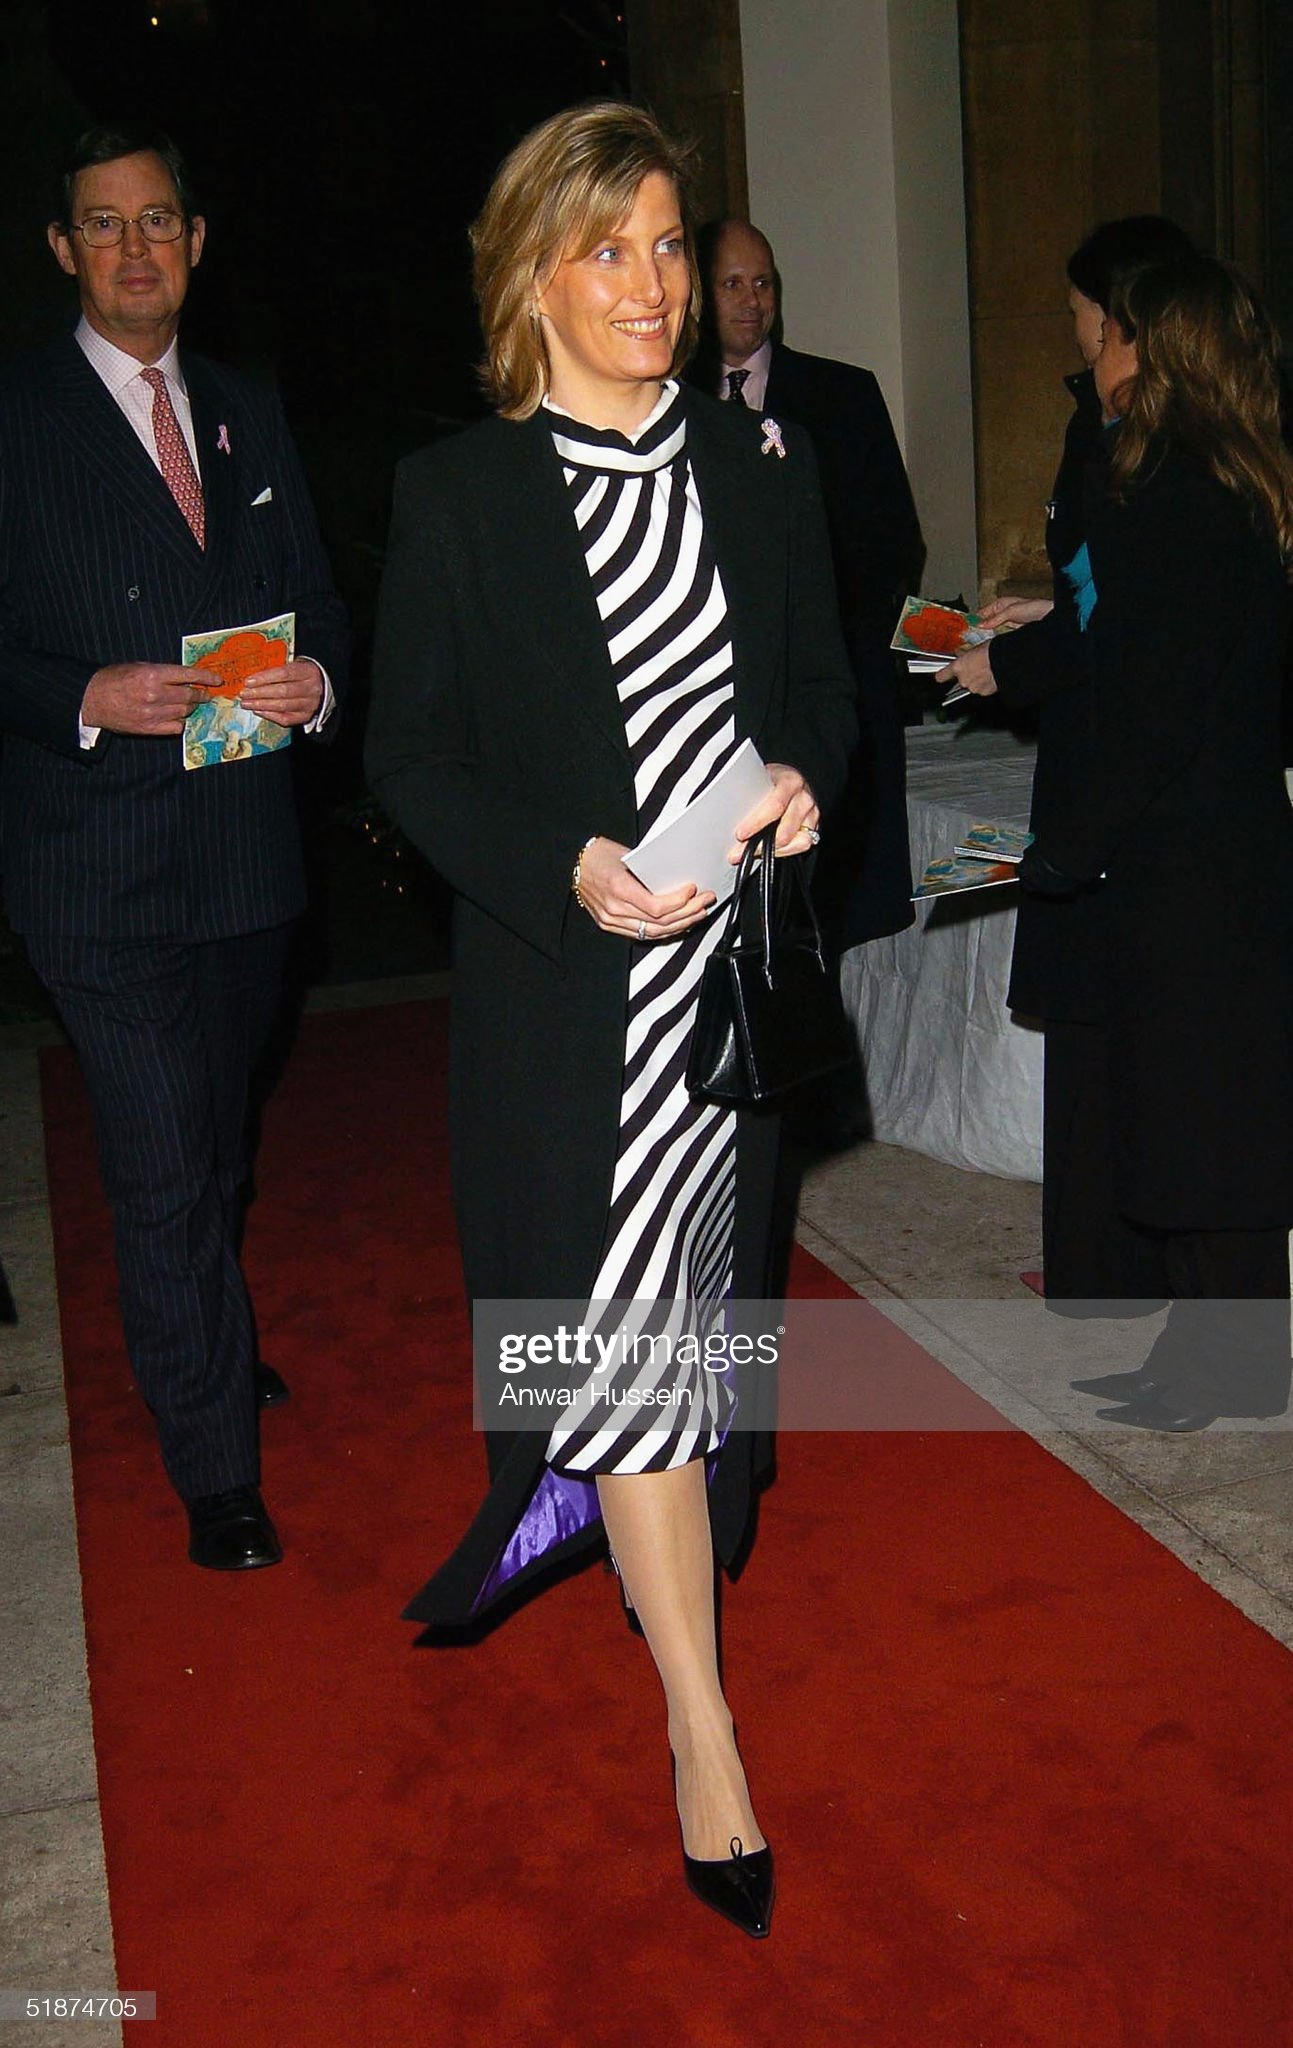 The Countess Of Wessex Attends The Haven Breast Cancer Carol Service : News Photo